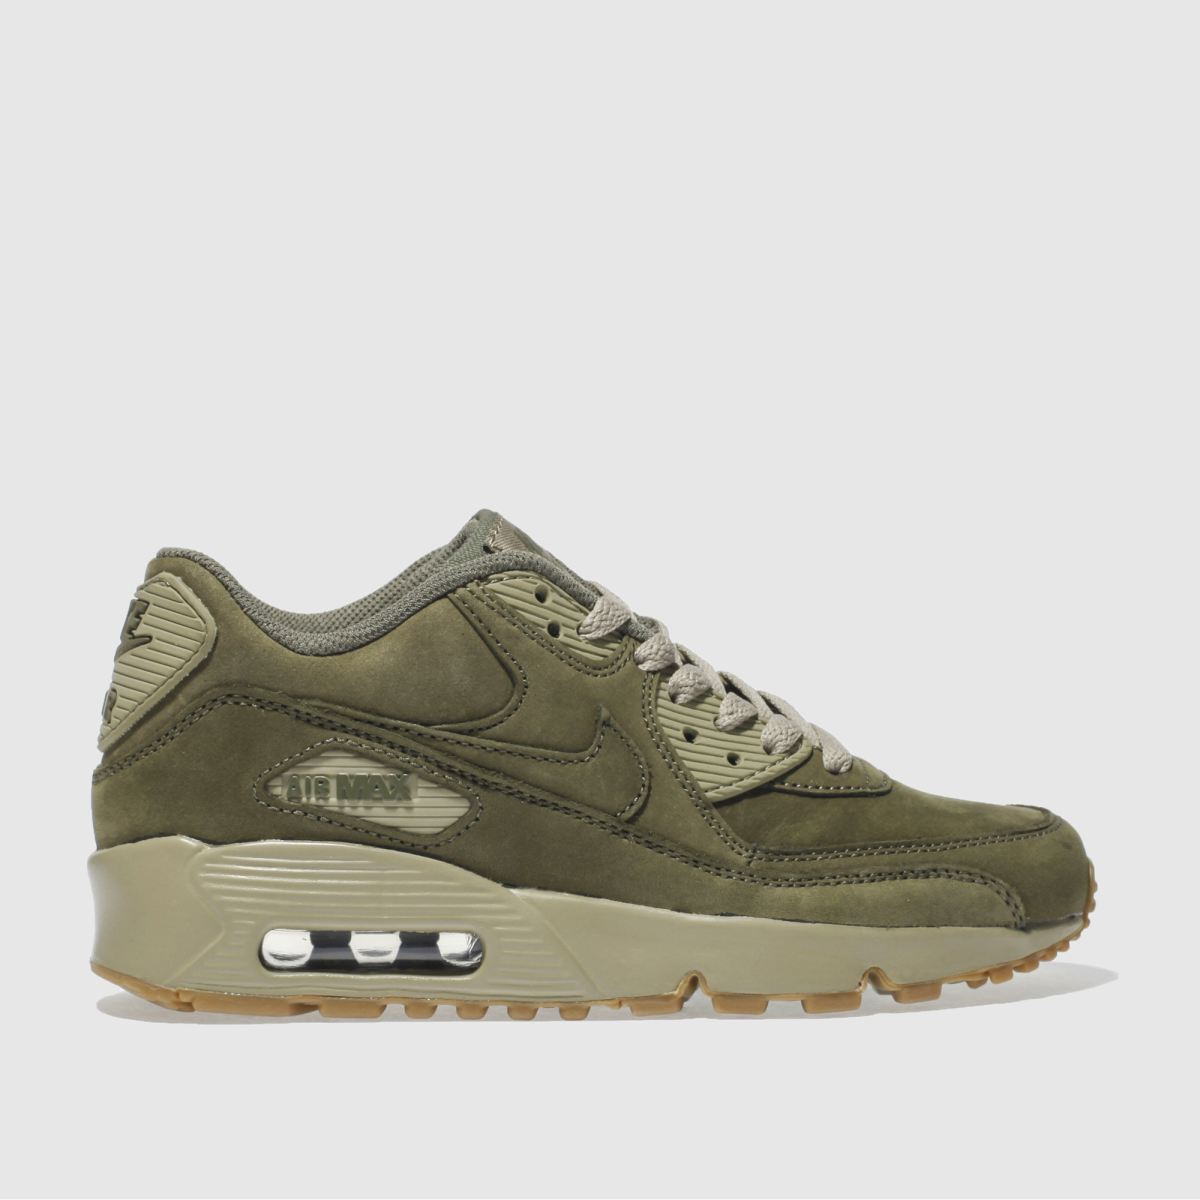 nike khaki air max 90 winter premium Youth Trainers